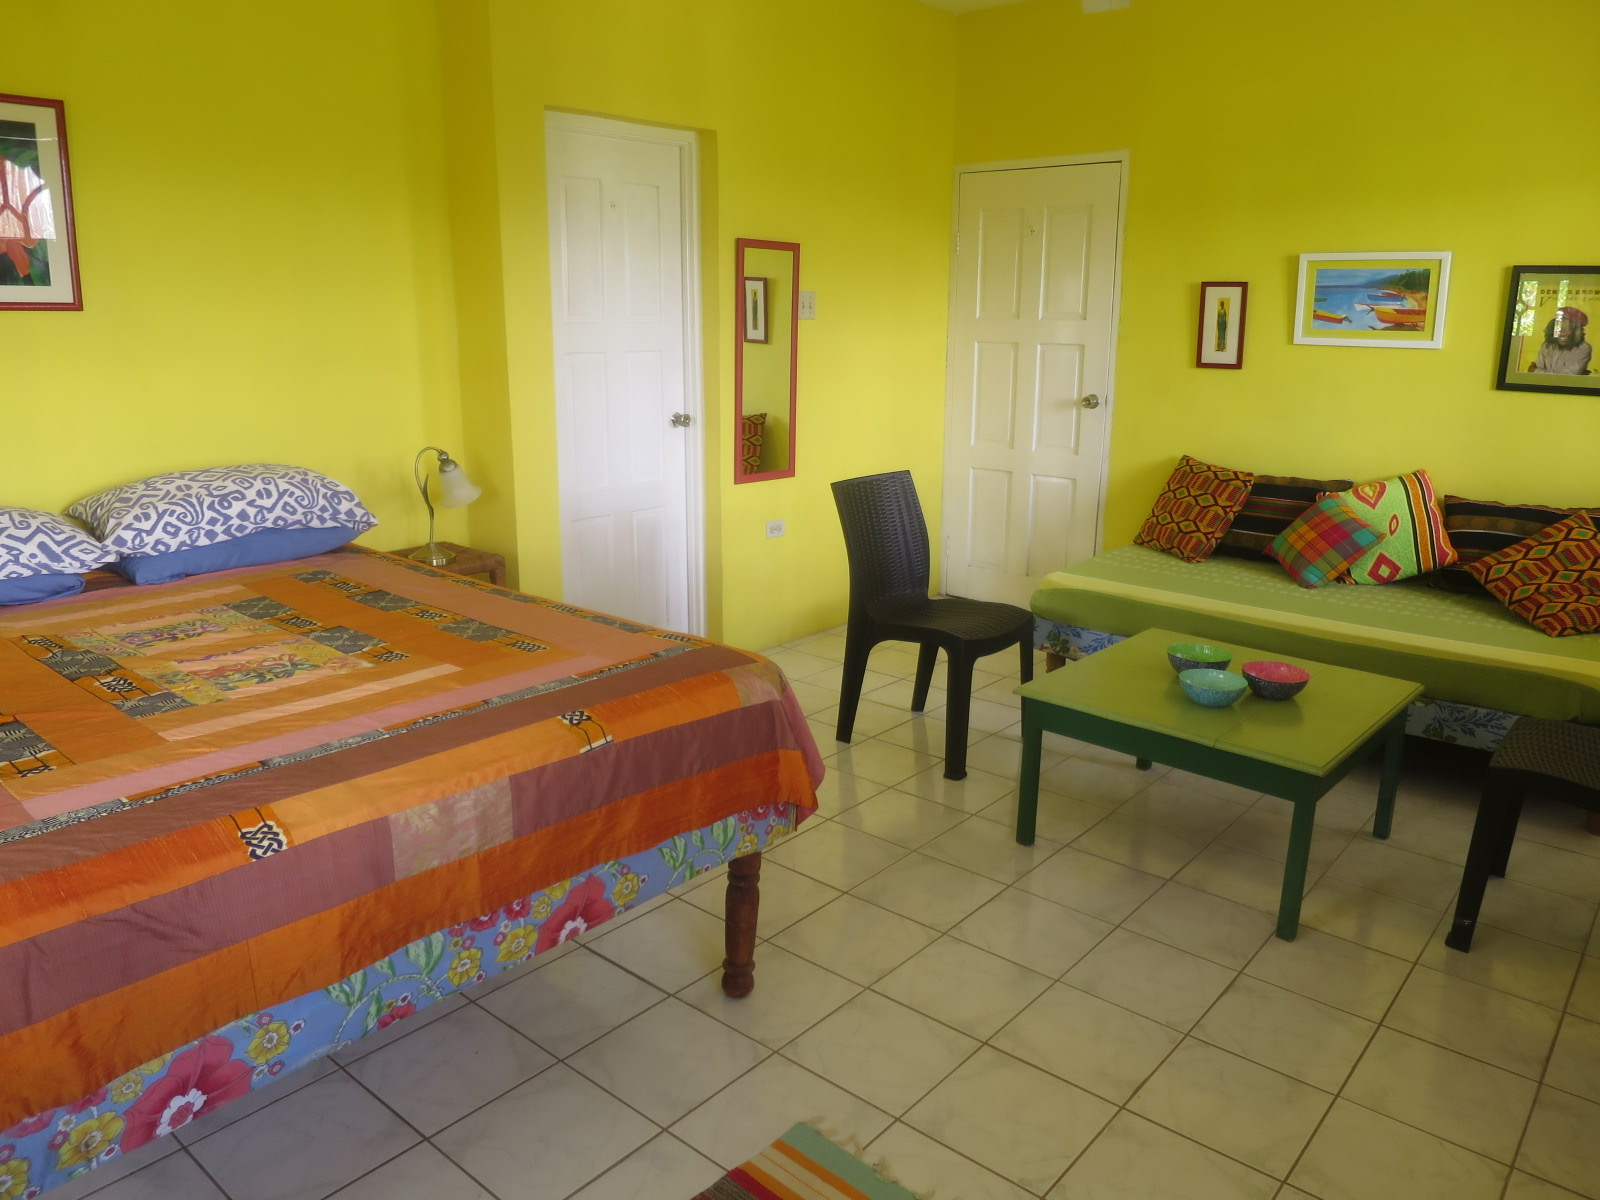 Irie Breeze - SPECIAL QUEEN ROOMWith cool breezes, private balcony, queen bed, en-suite shower,this room has lots of space and light and faces the sea.